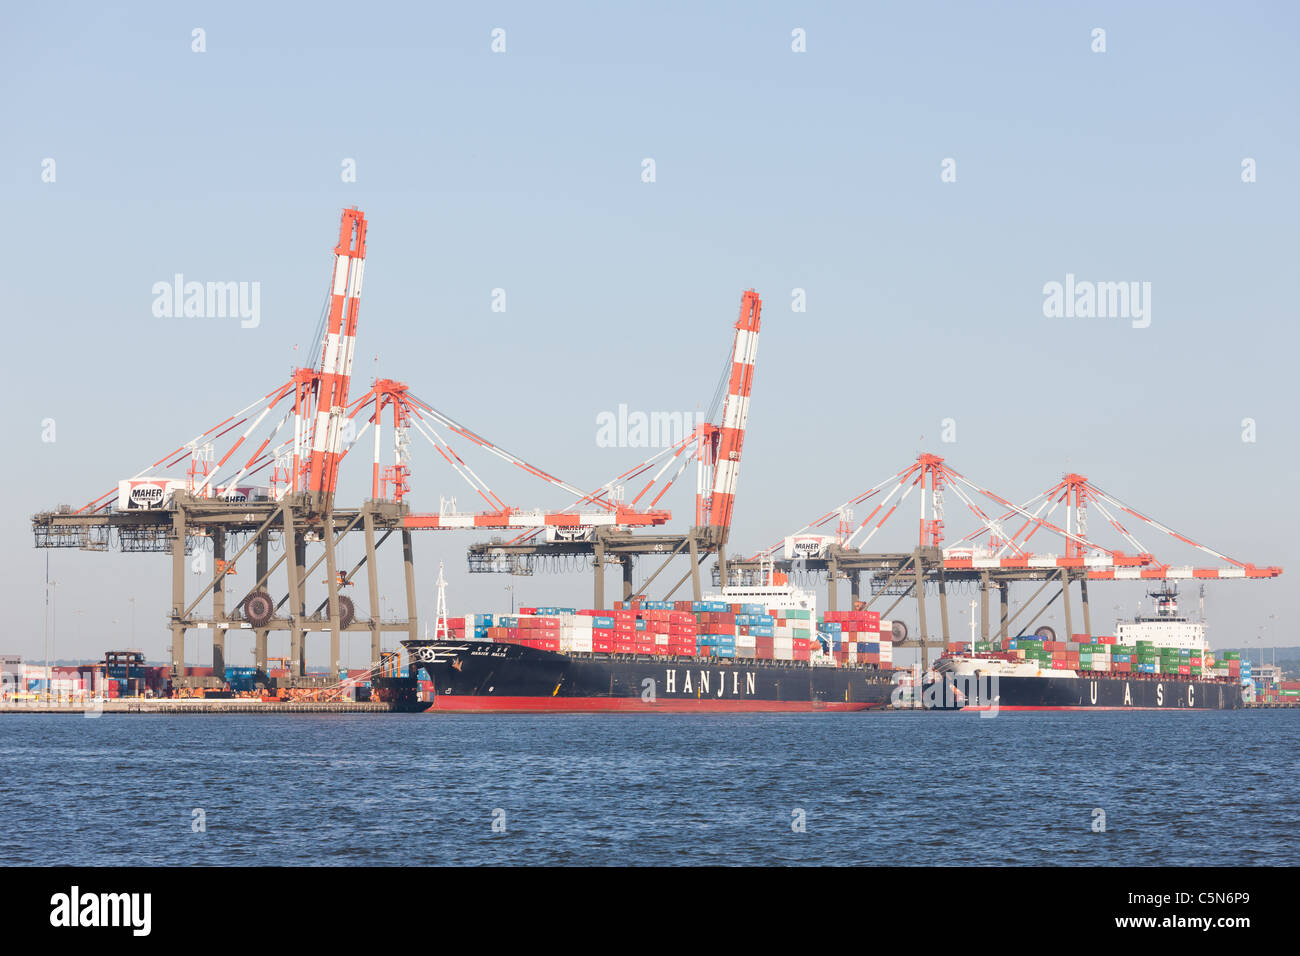 Container ships are loaded at the Maher Terminals container terminal in the Port Newark-Elizabeth Marine Terminal. - Stock Image